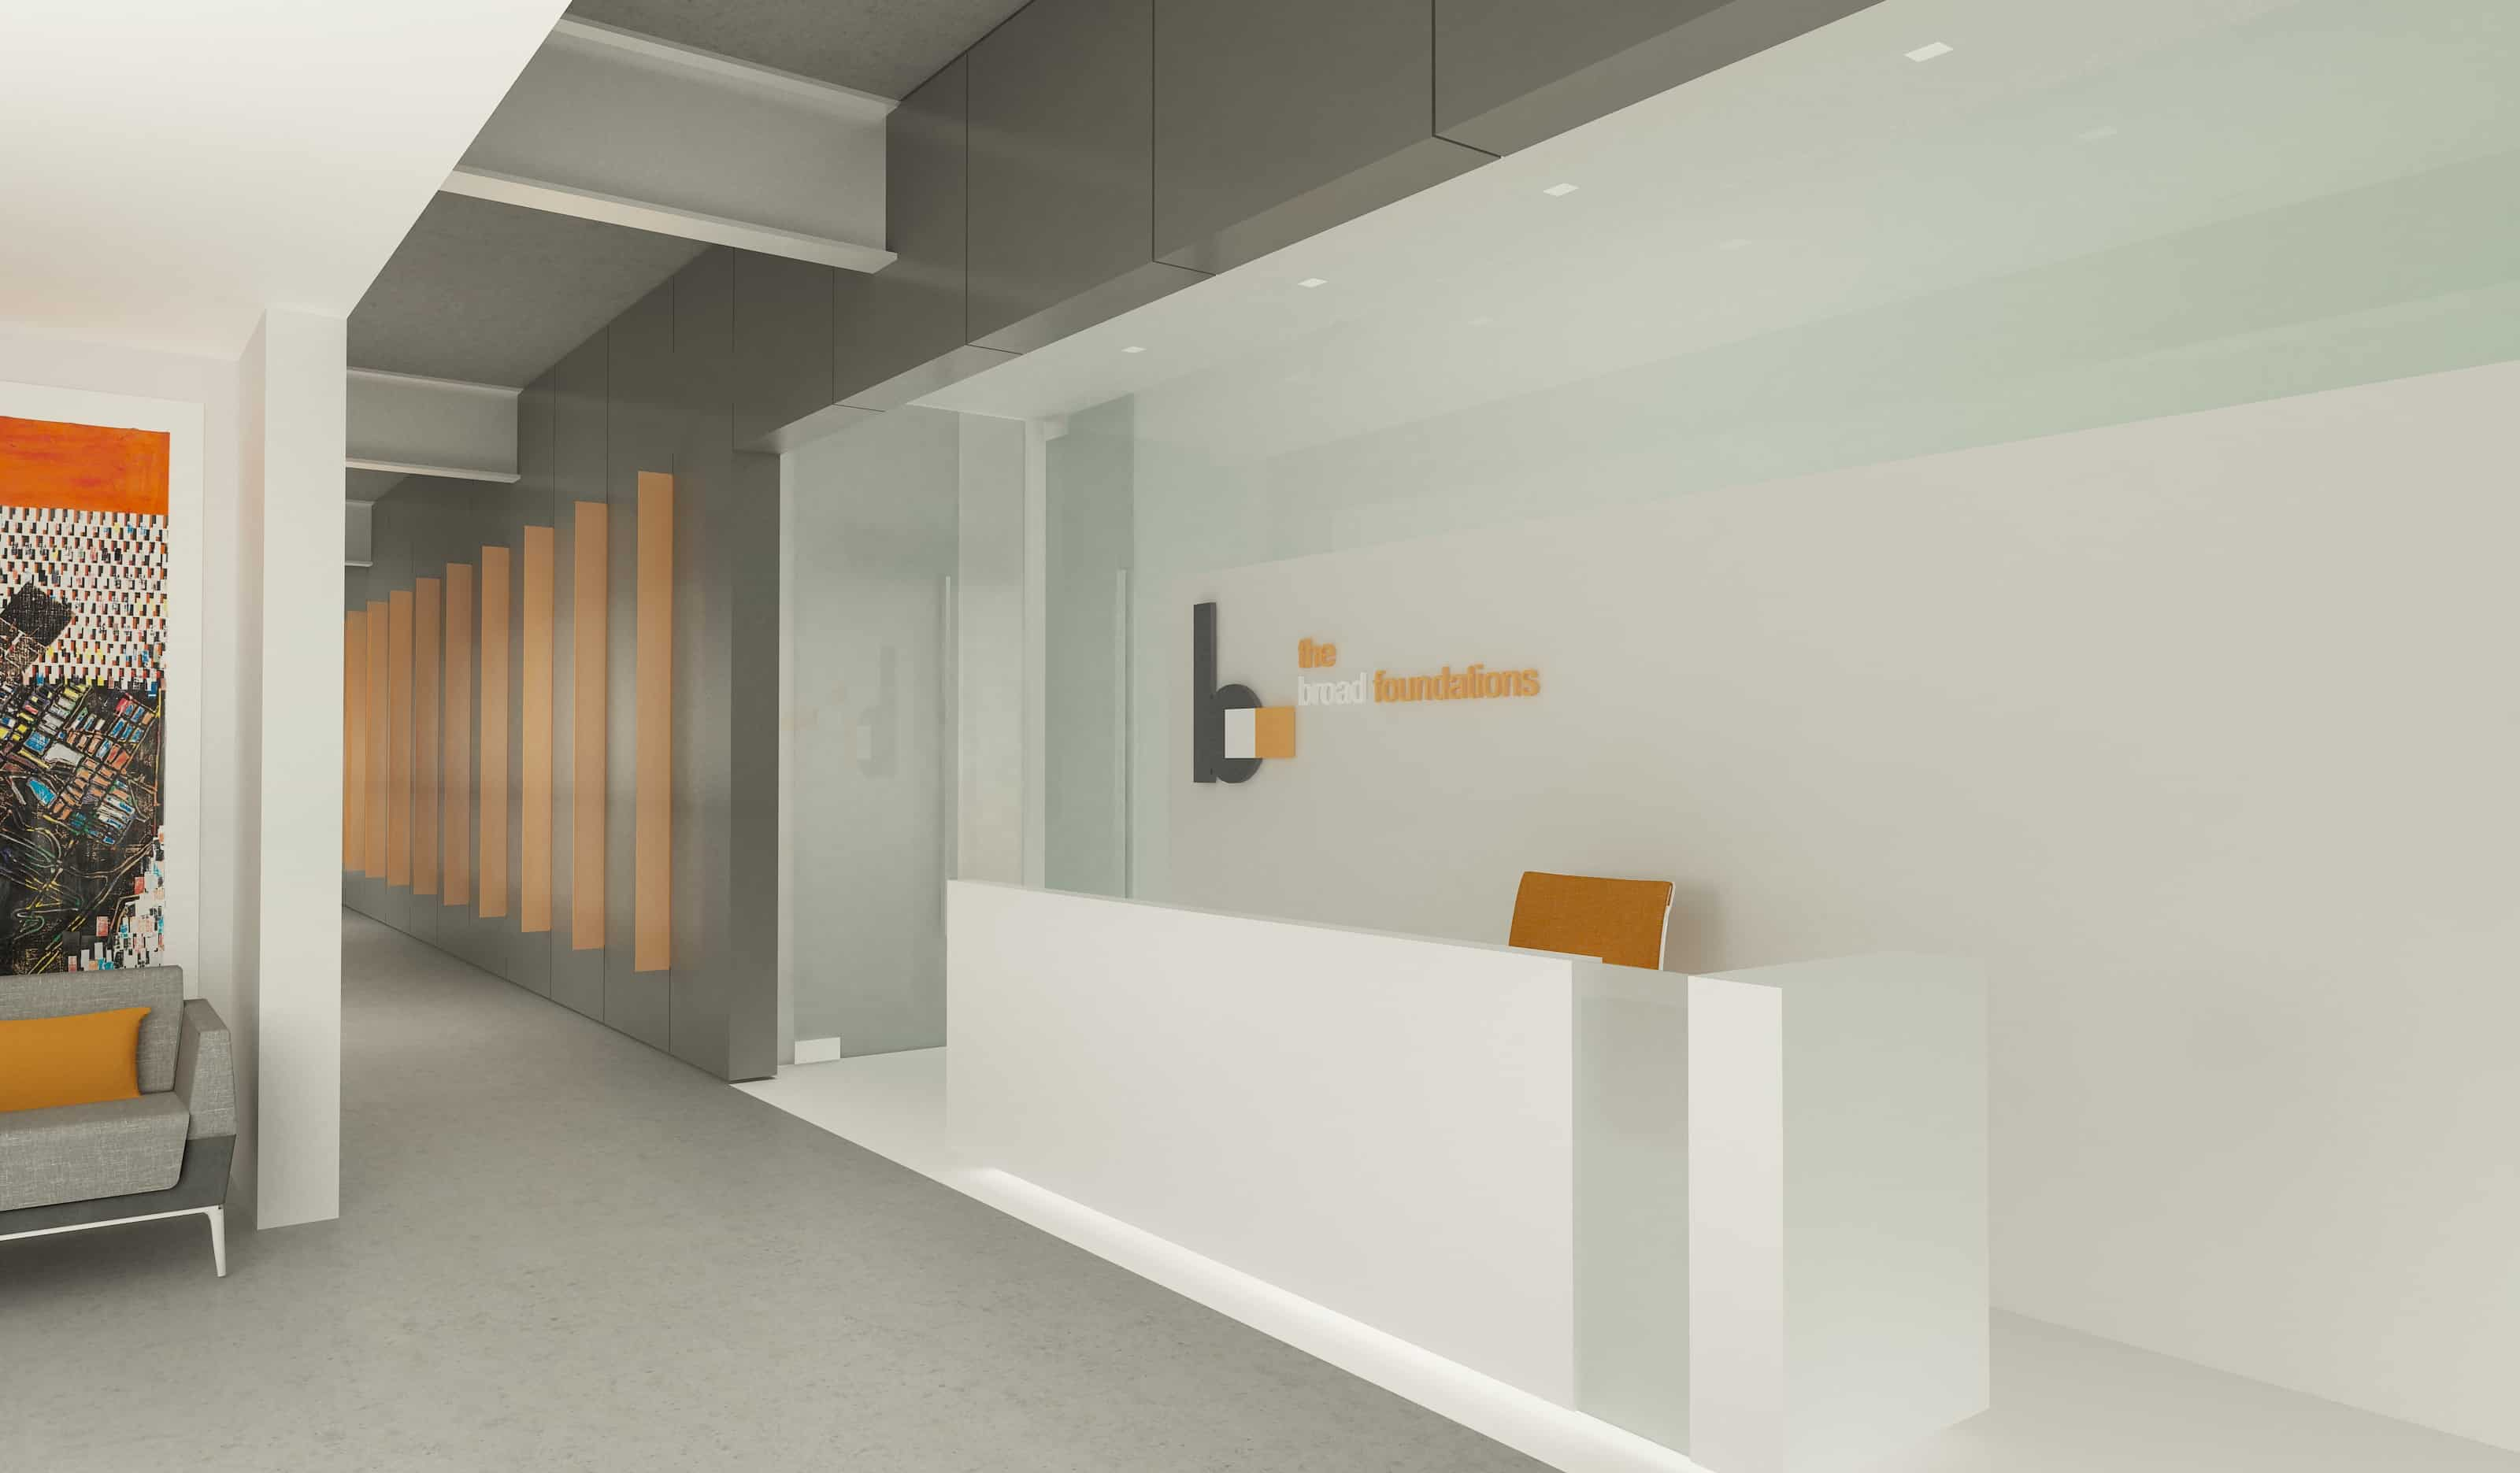 1348_Broad Foundation_LOBBY 2